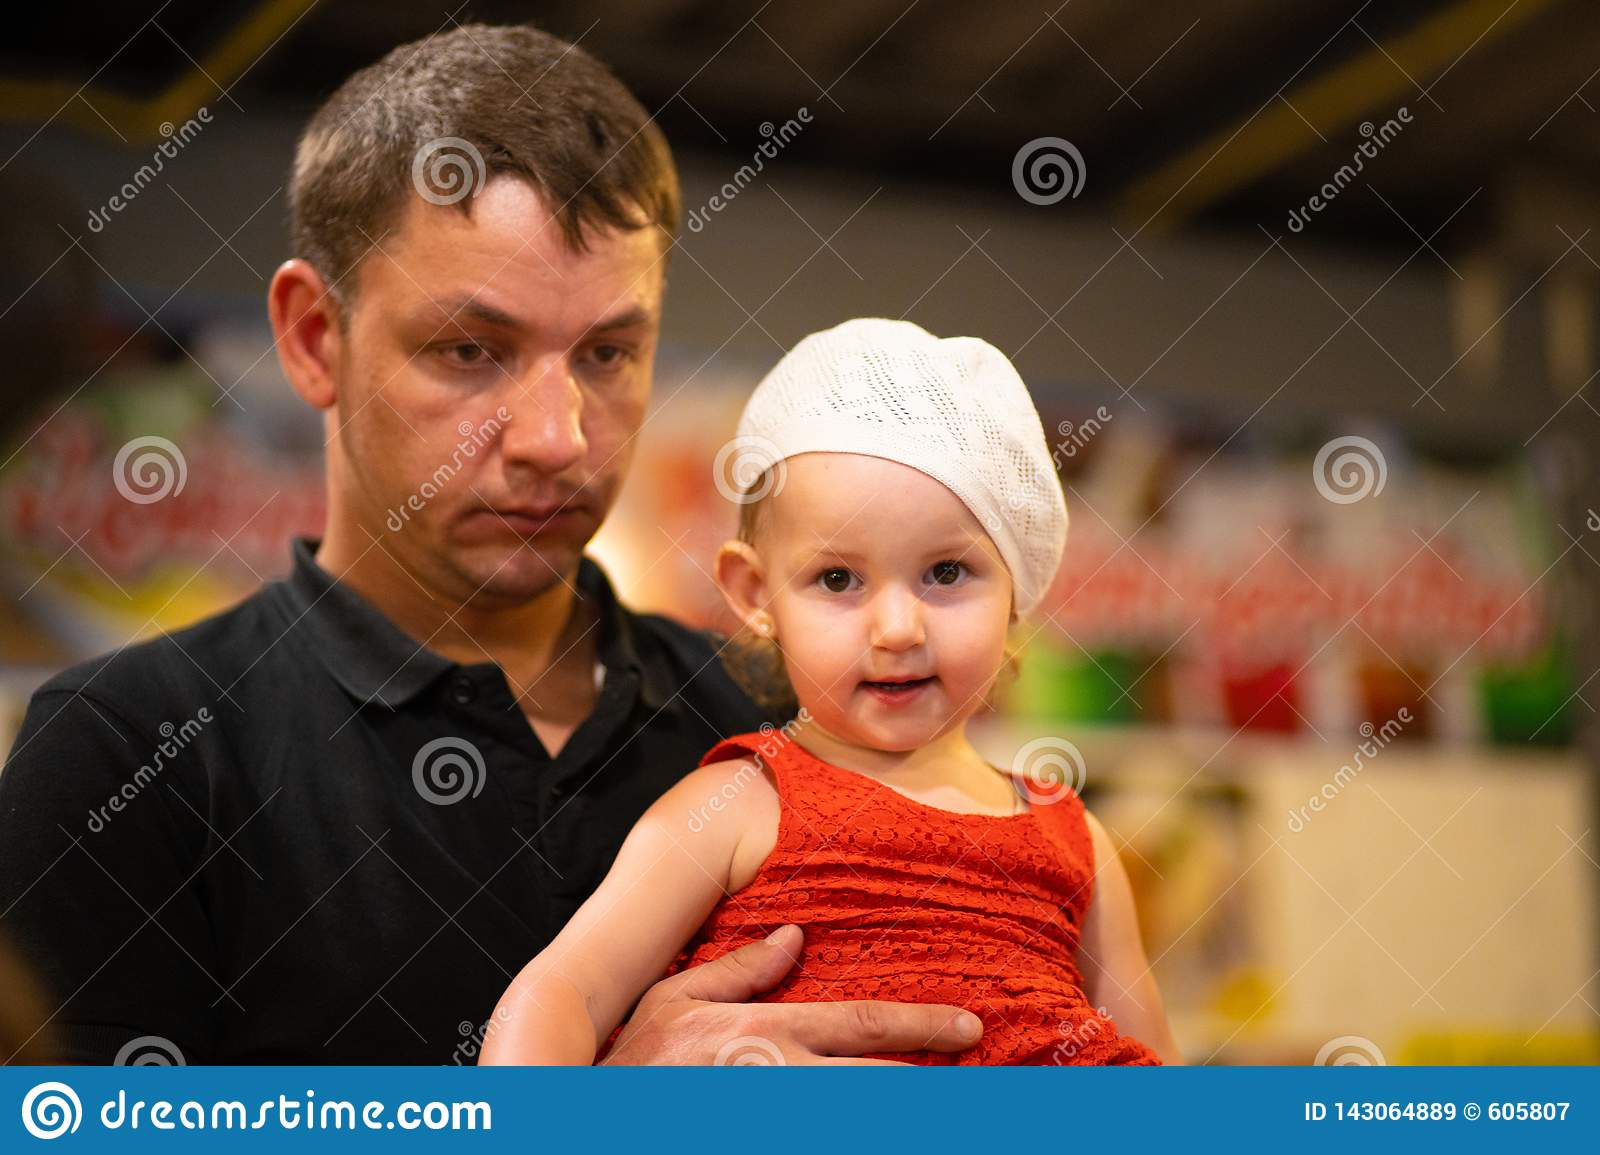 Tired dad holding daughter in his arms, fatherhood concept.